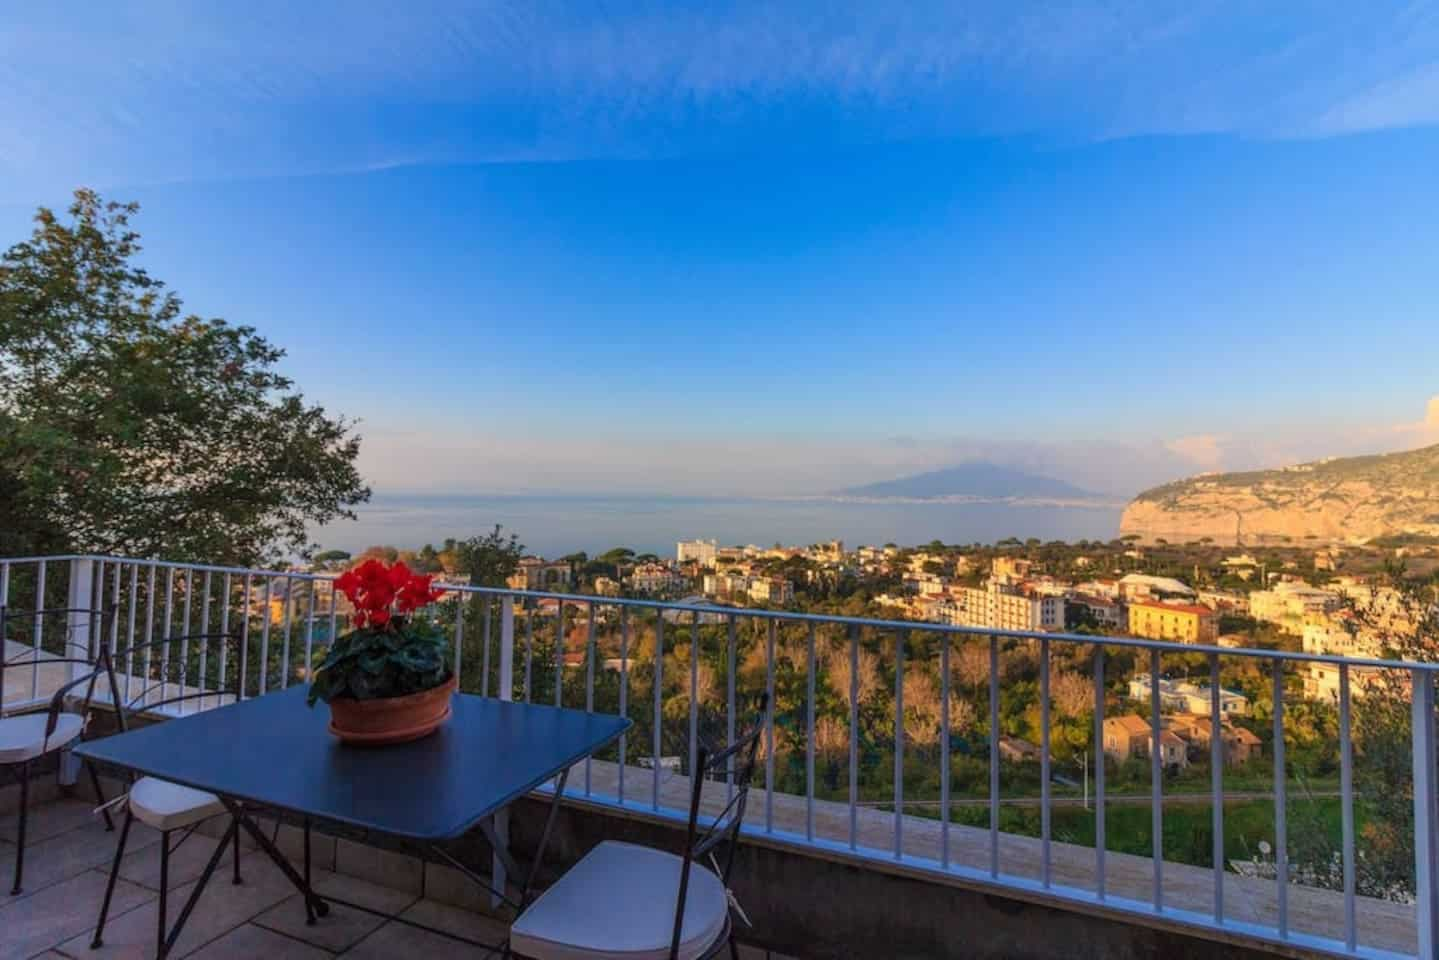 Image of Airbnb rental in Sorrento, Italy